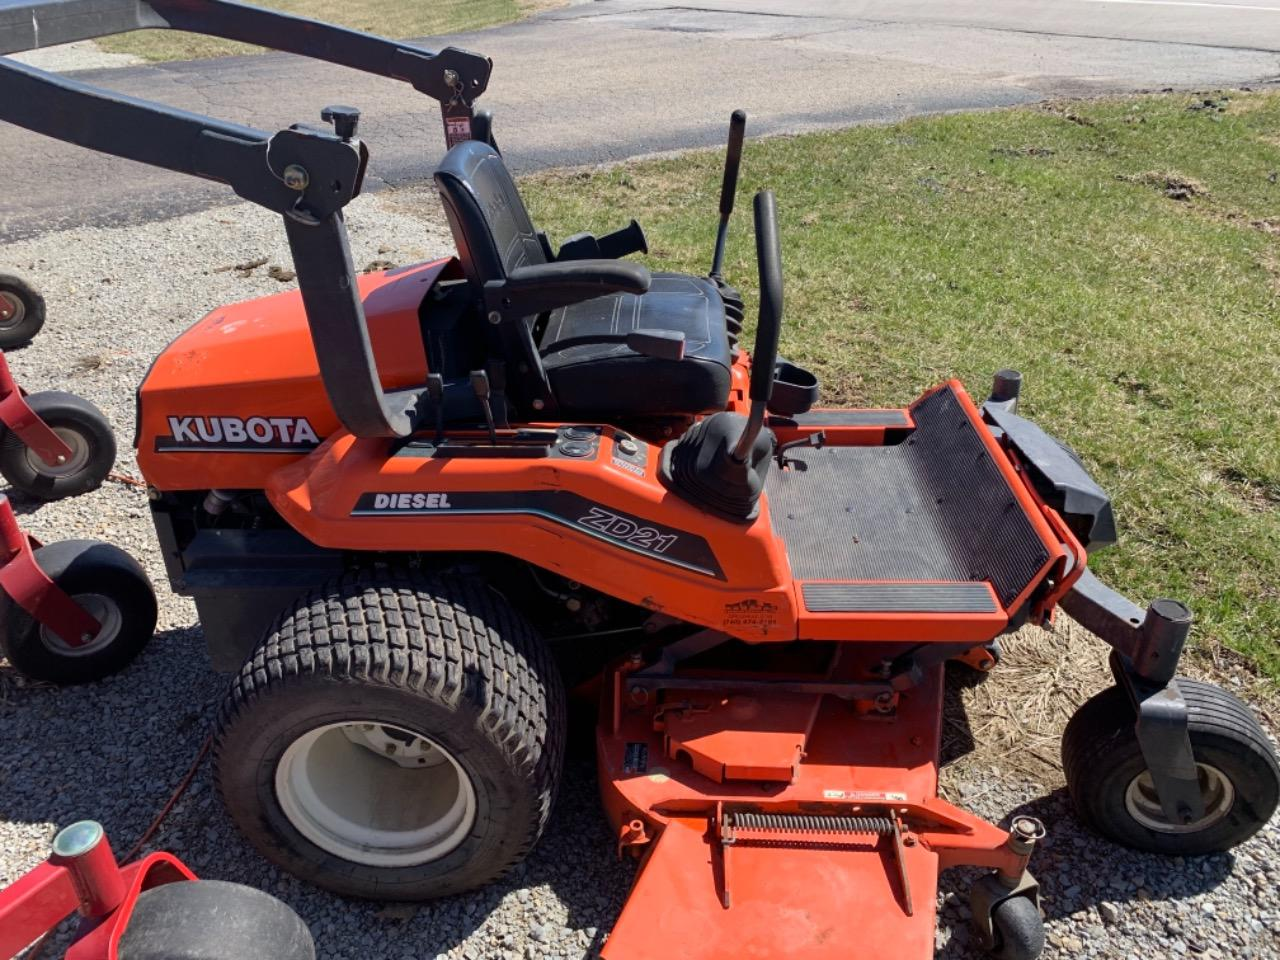 Inventory from New Holland Agriculture and Kubota Baxla